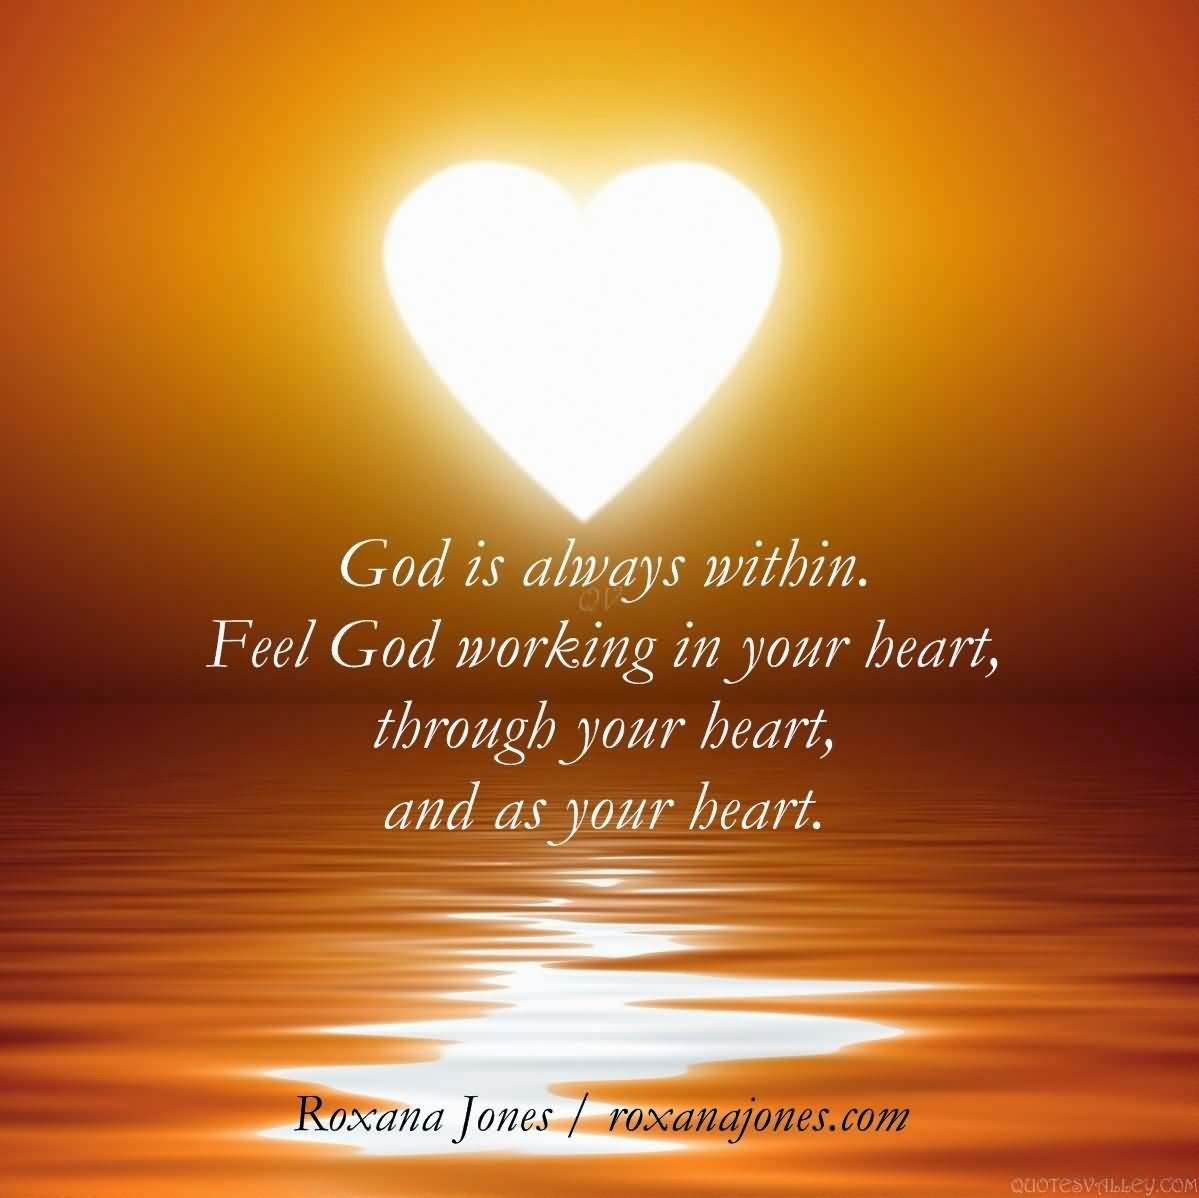 god-is-always-within-feel-god-working-in-your-heart-through-your-heart-and-as-your-heart-2